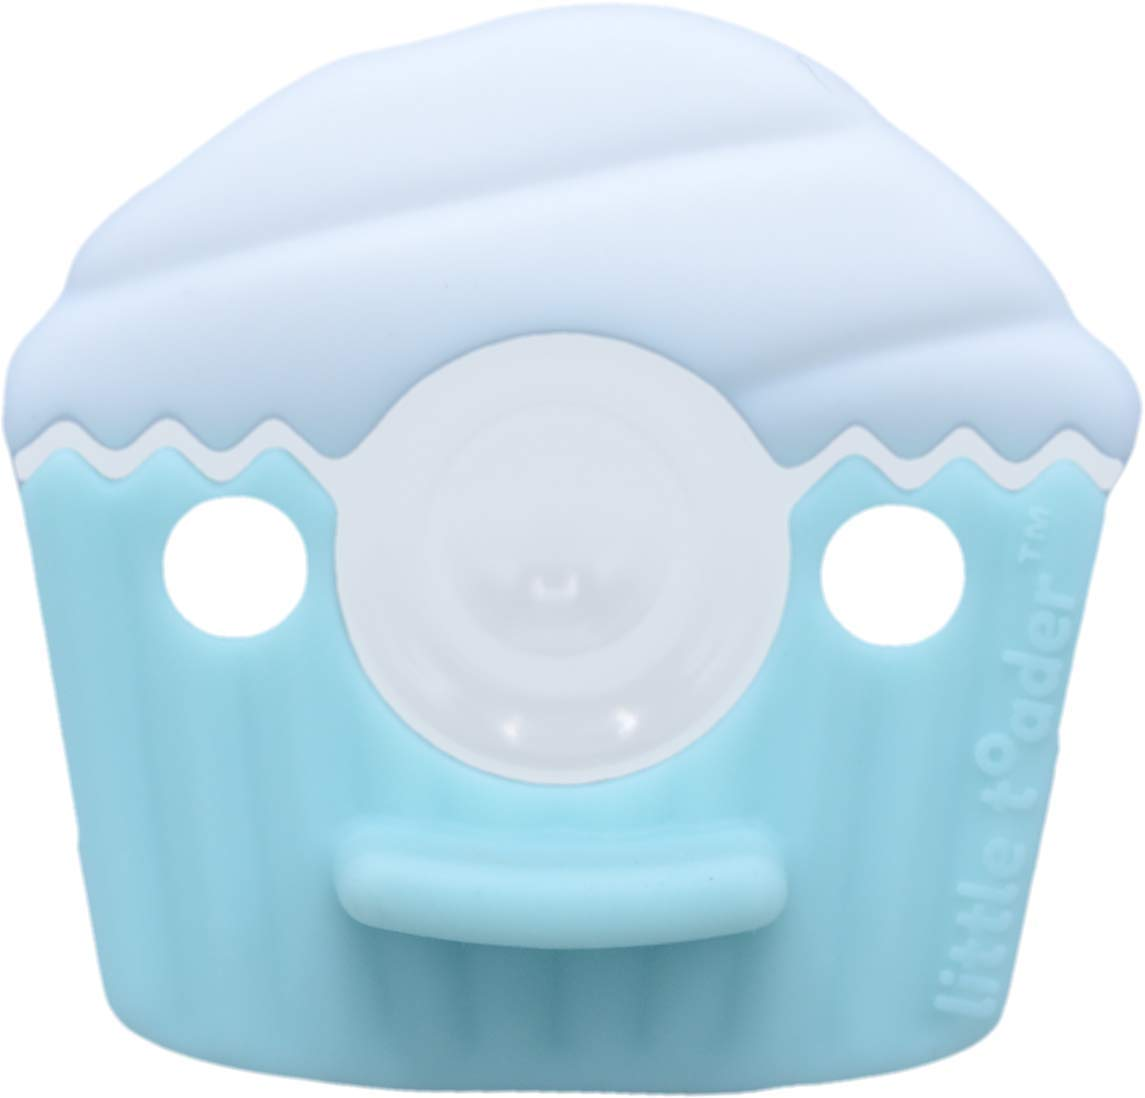 Bpa Free Teether Ice Cream Little Toader Teething Toys ICU Teething Toy Soft Silicone Fun Dessert Shaped BPA Free Teethers